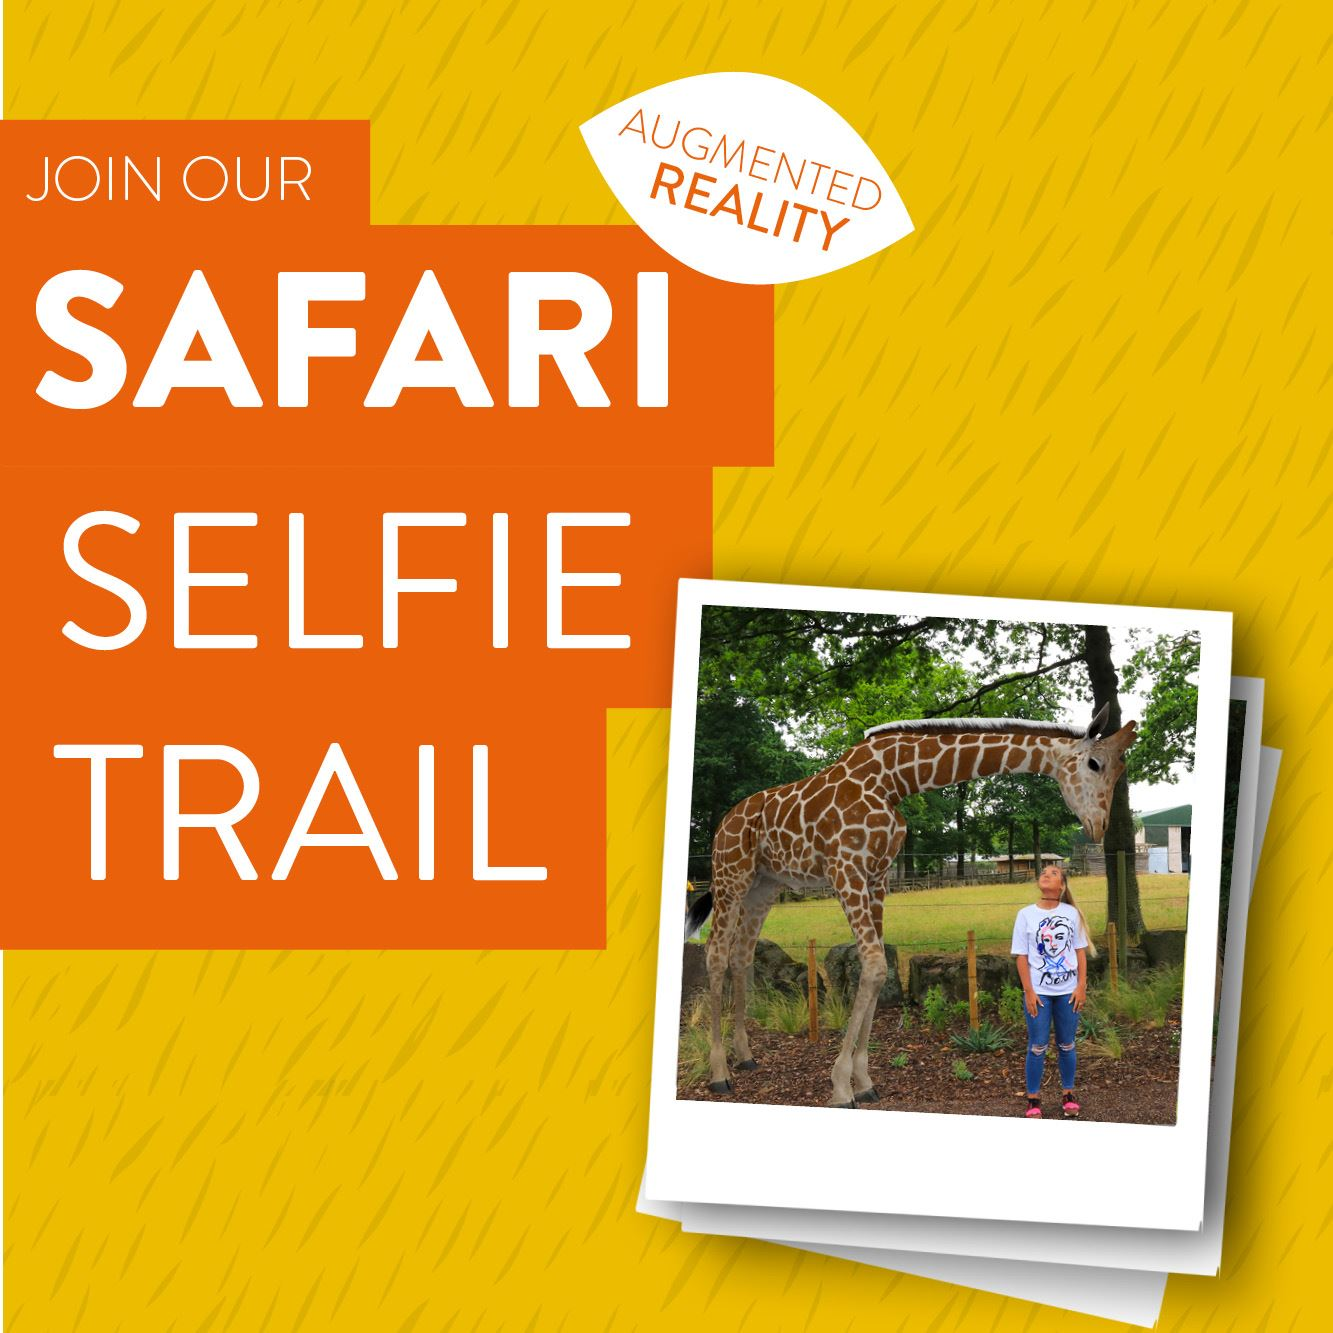 Join our Safari Selfie Trail